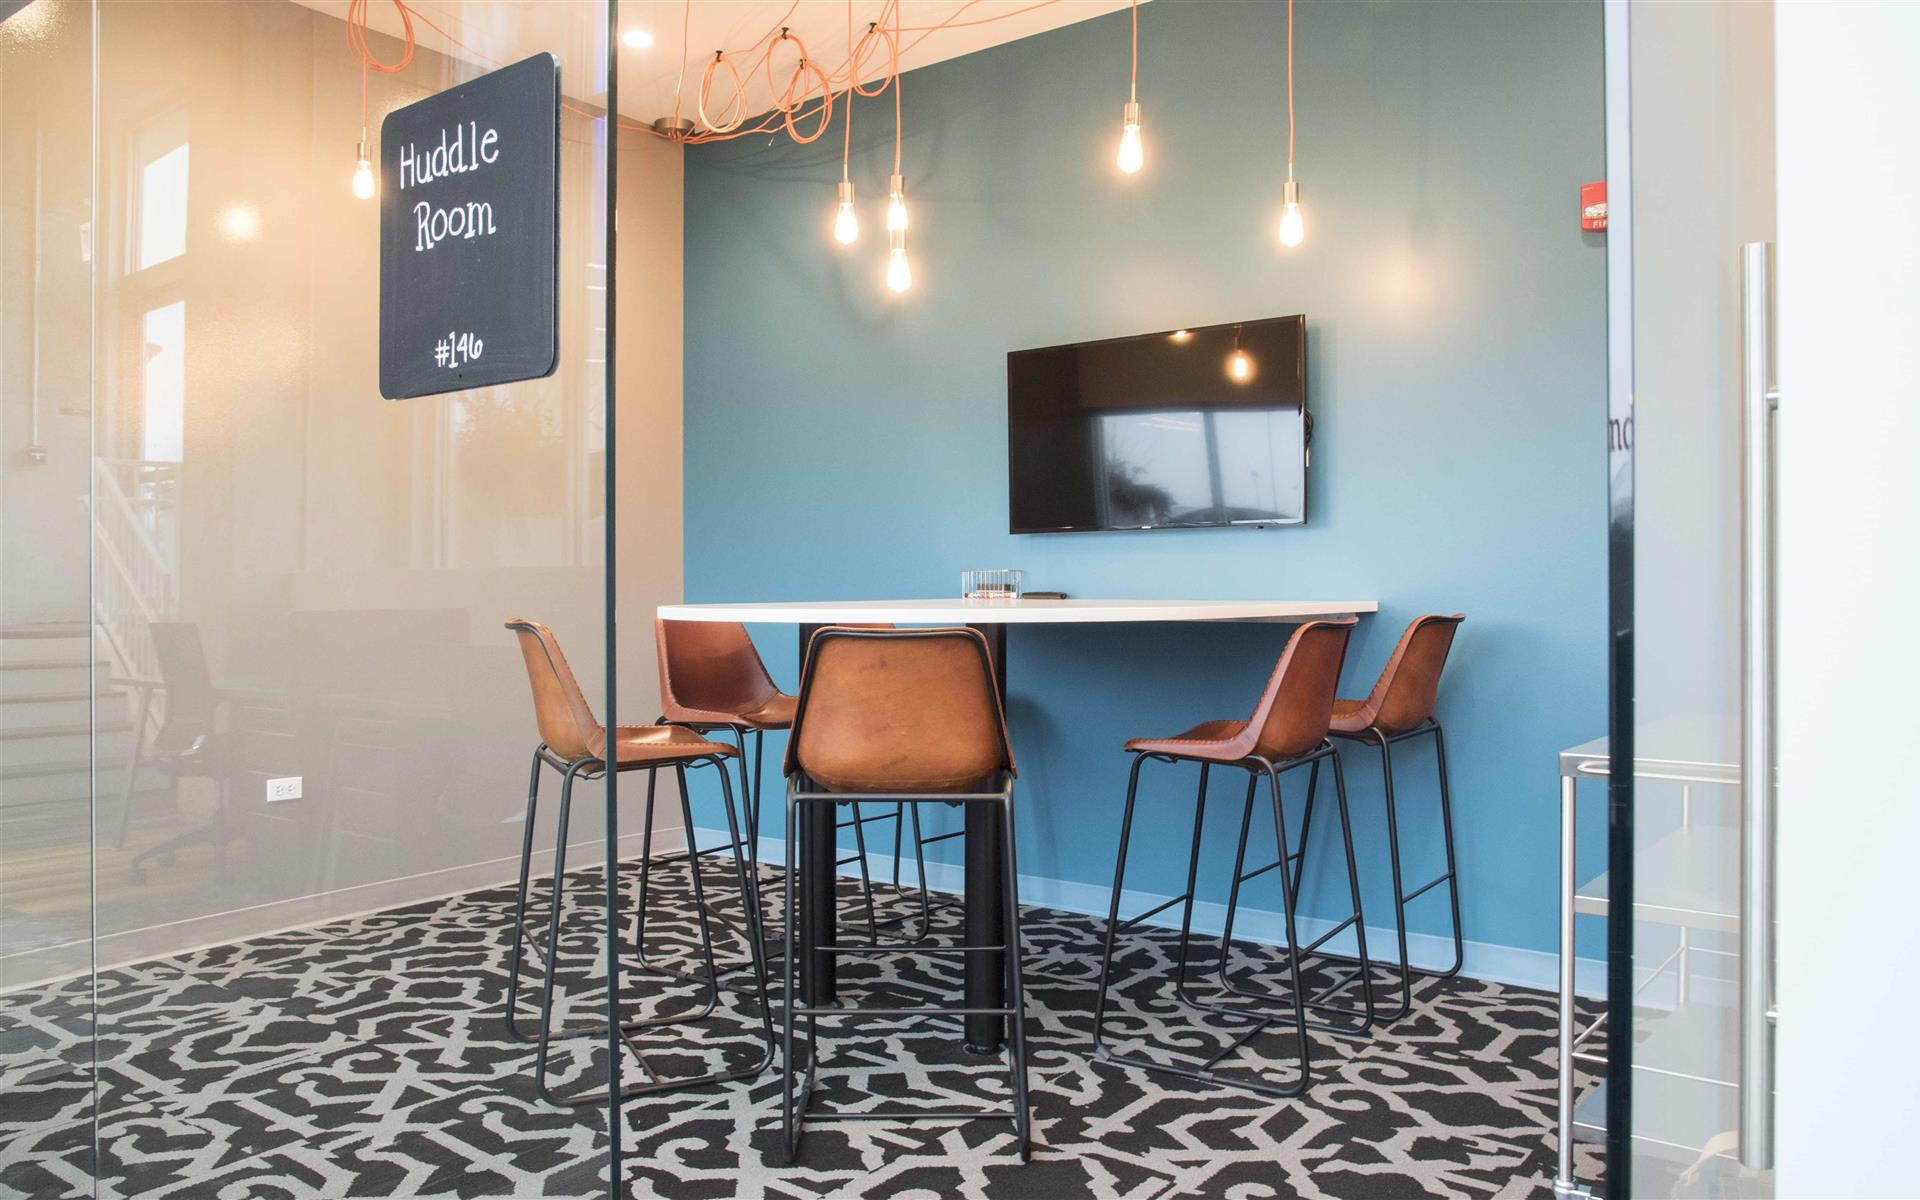 25N Coworking - Arlington Heights - Huddle Room